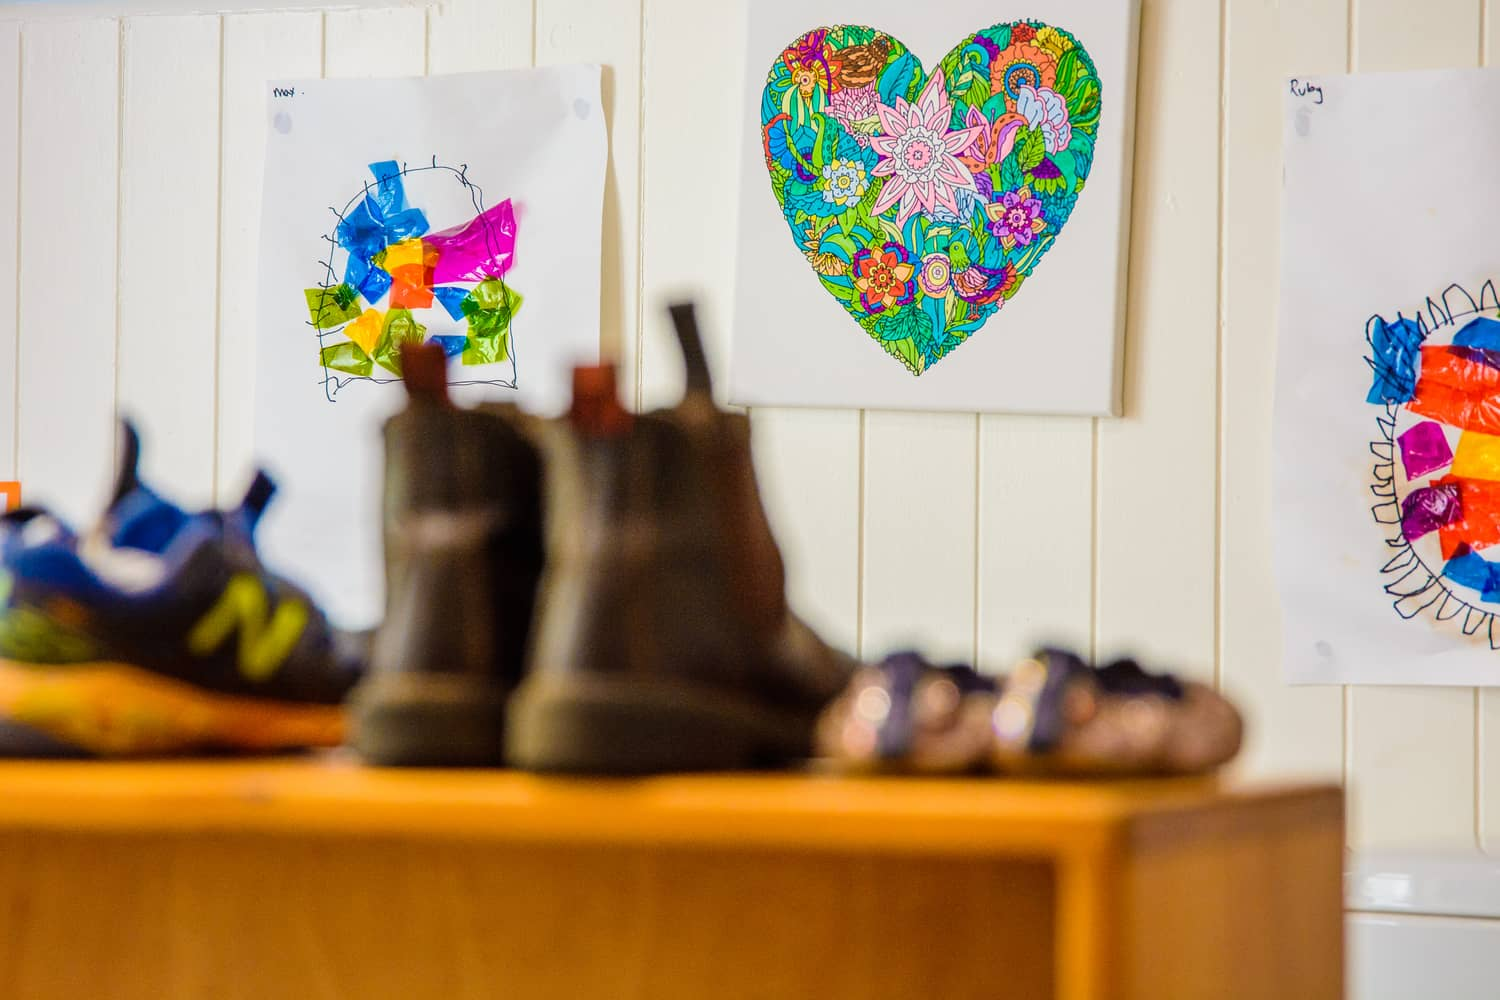 Childrens shoes all lines up and artwork on the wall in the classroom